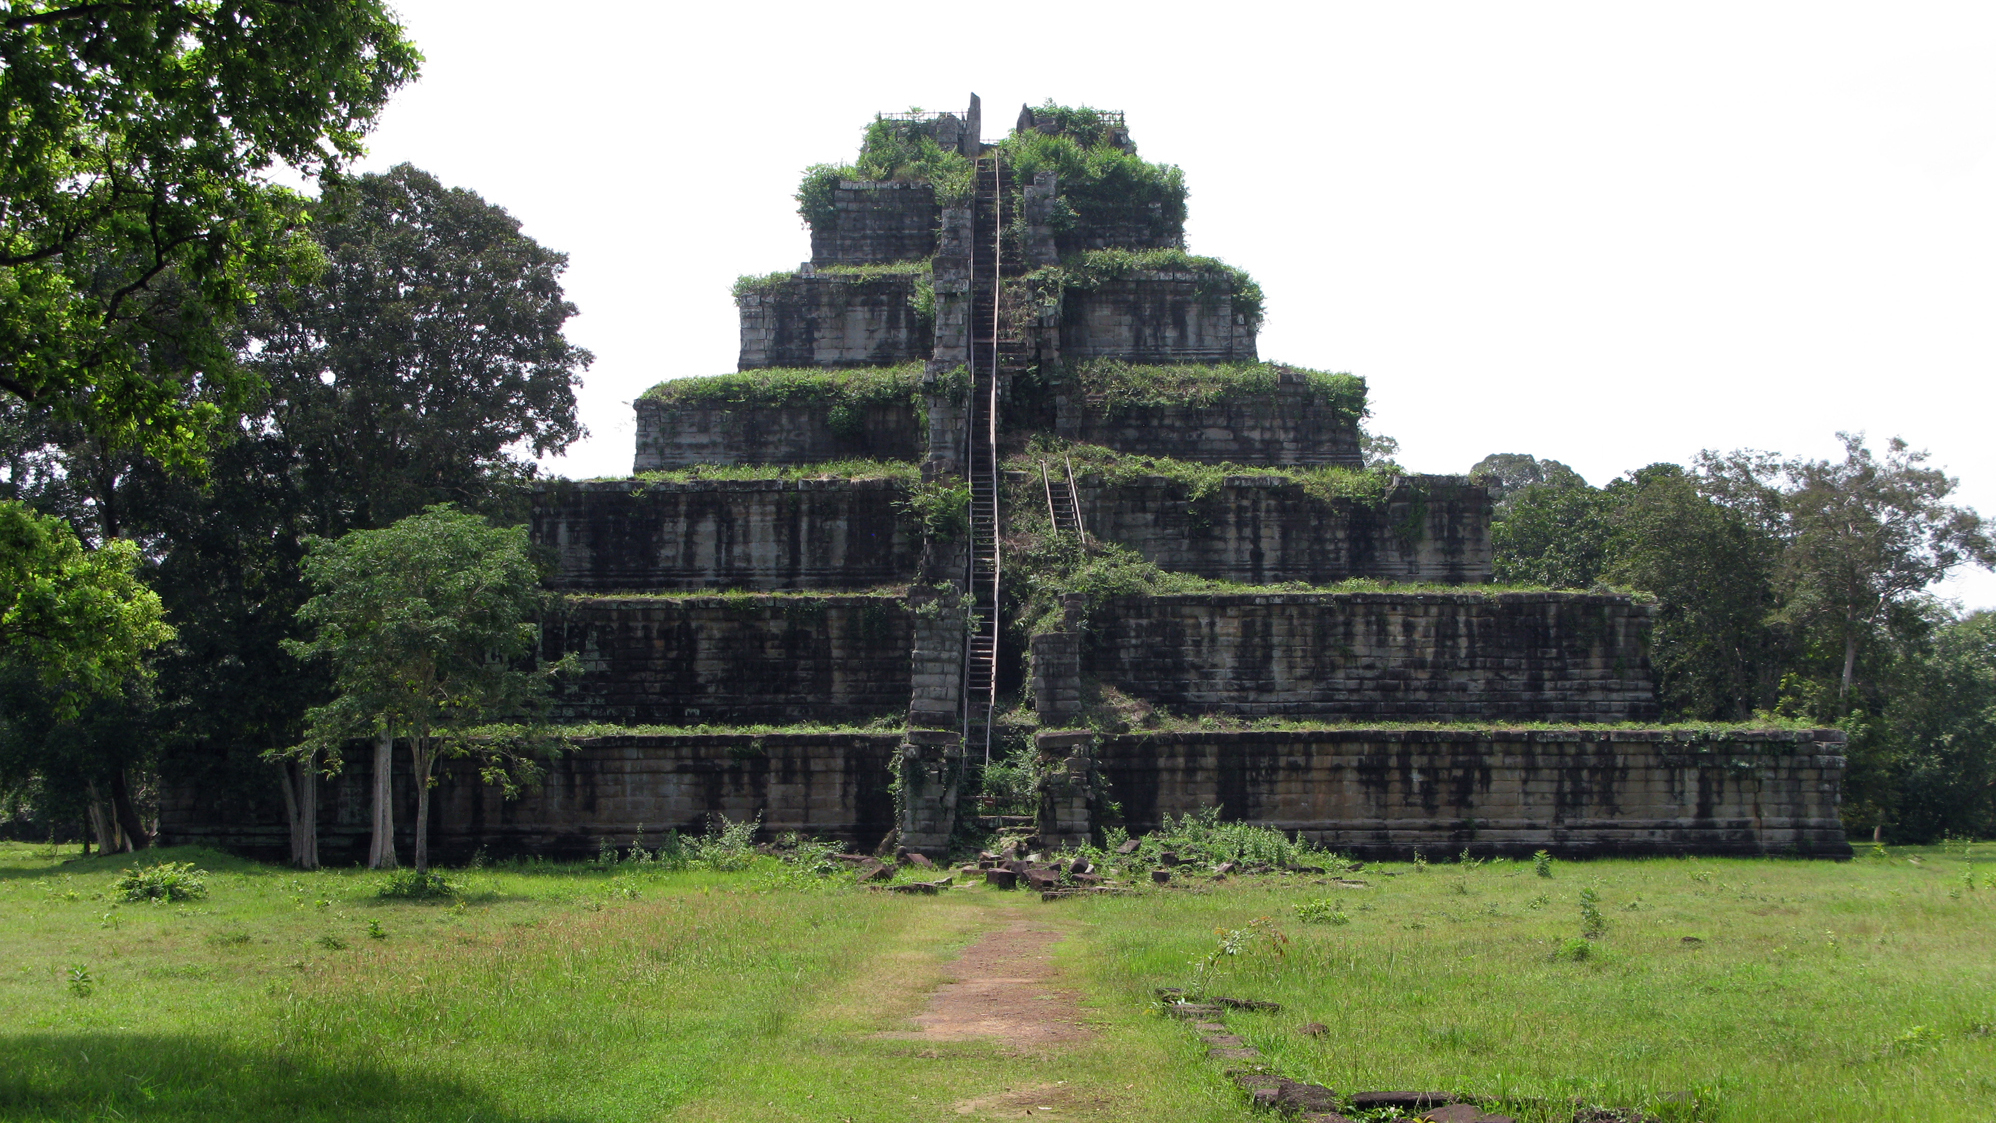 King Jayavarman IV built this pyramid-shaped monument at the center of his capital at Koh Ker in northern Cambodia in the 10th century. The ruler of the Khmer empire died two decades later, and the capital was abandoned and swallowed by the jungle.